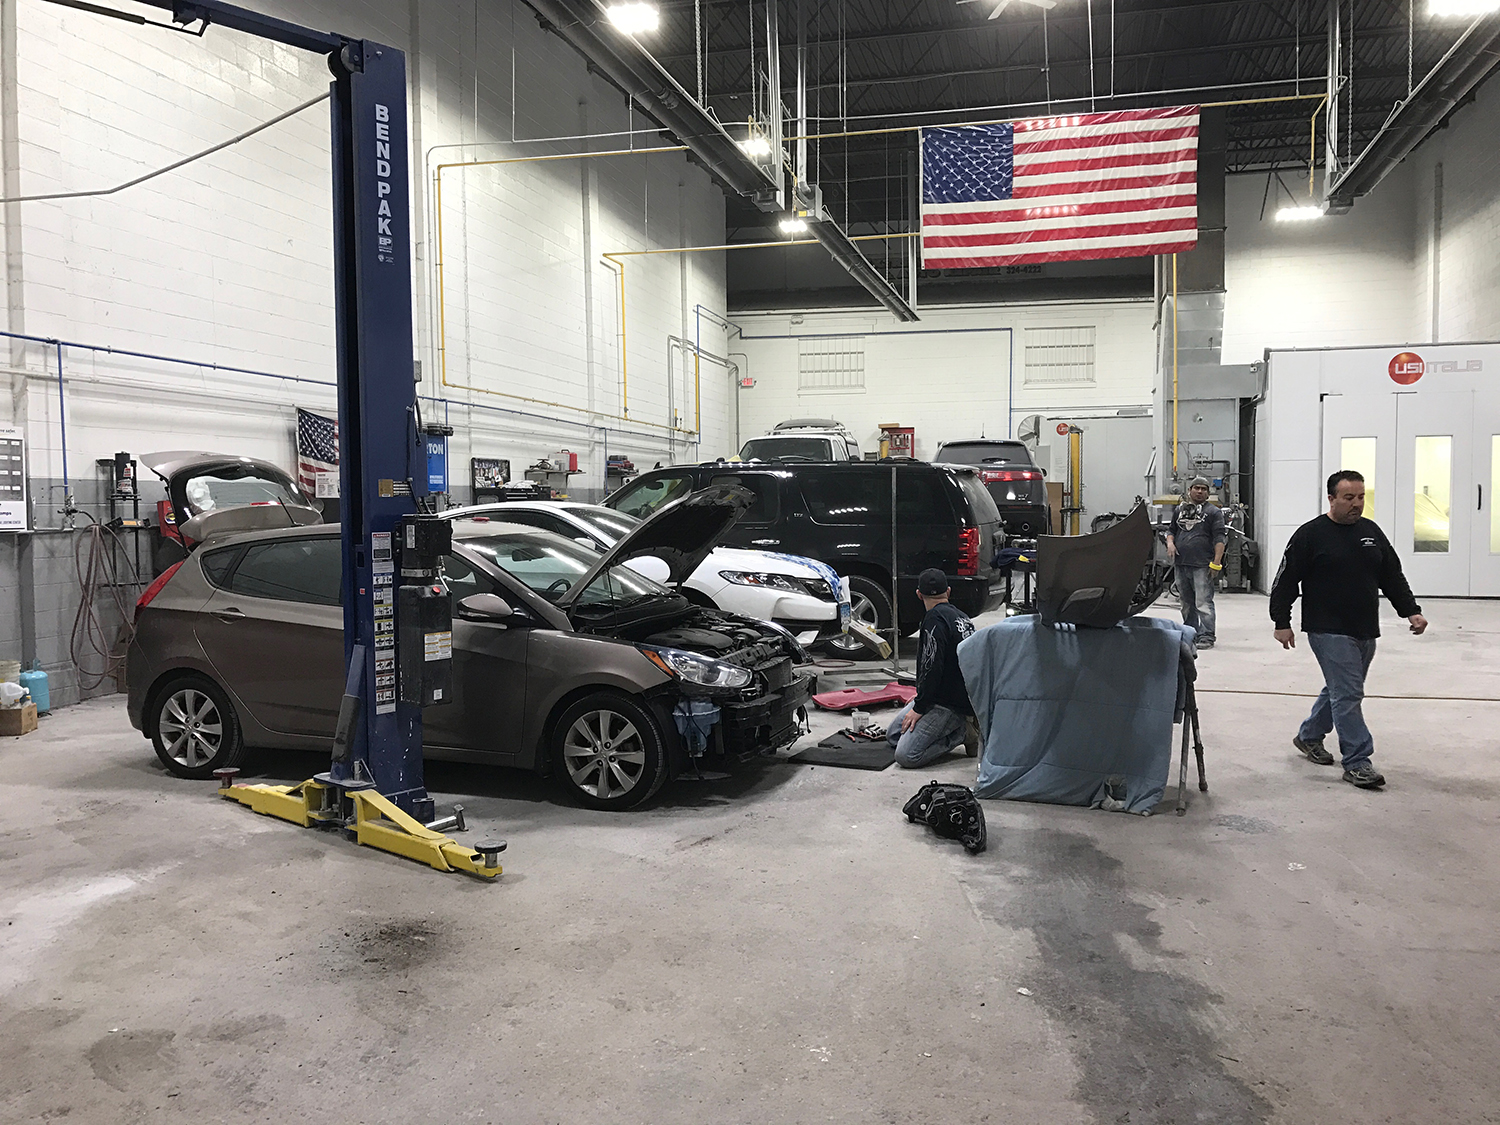 Are you in need of auto collision/repair or a tow service in the Stamford,  CT area? Call Extreme Auto Body & Auto Repair today!